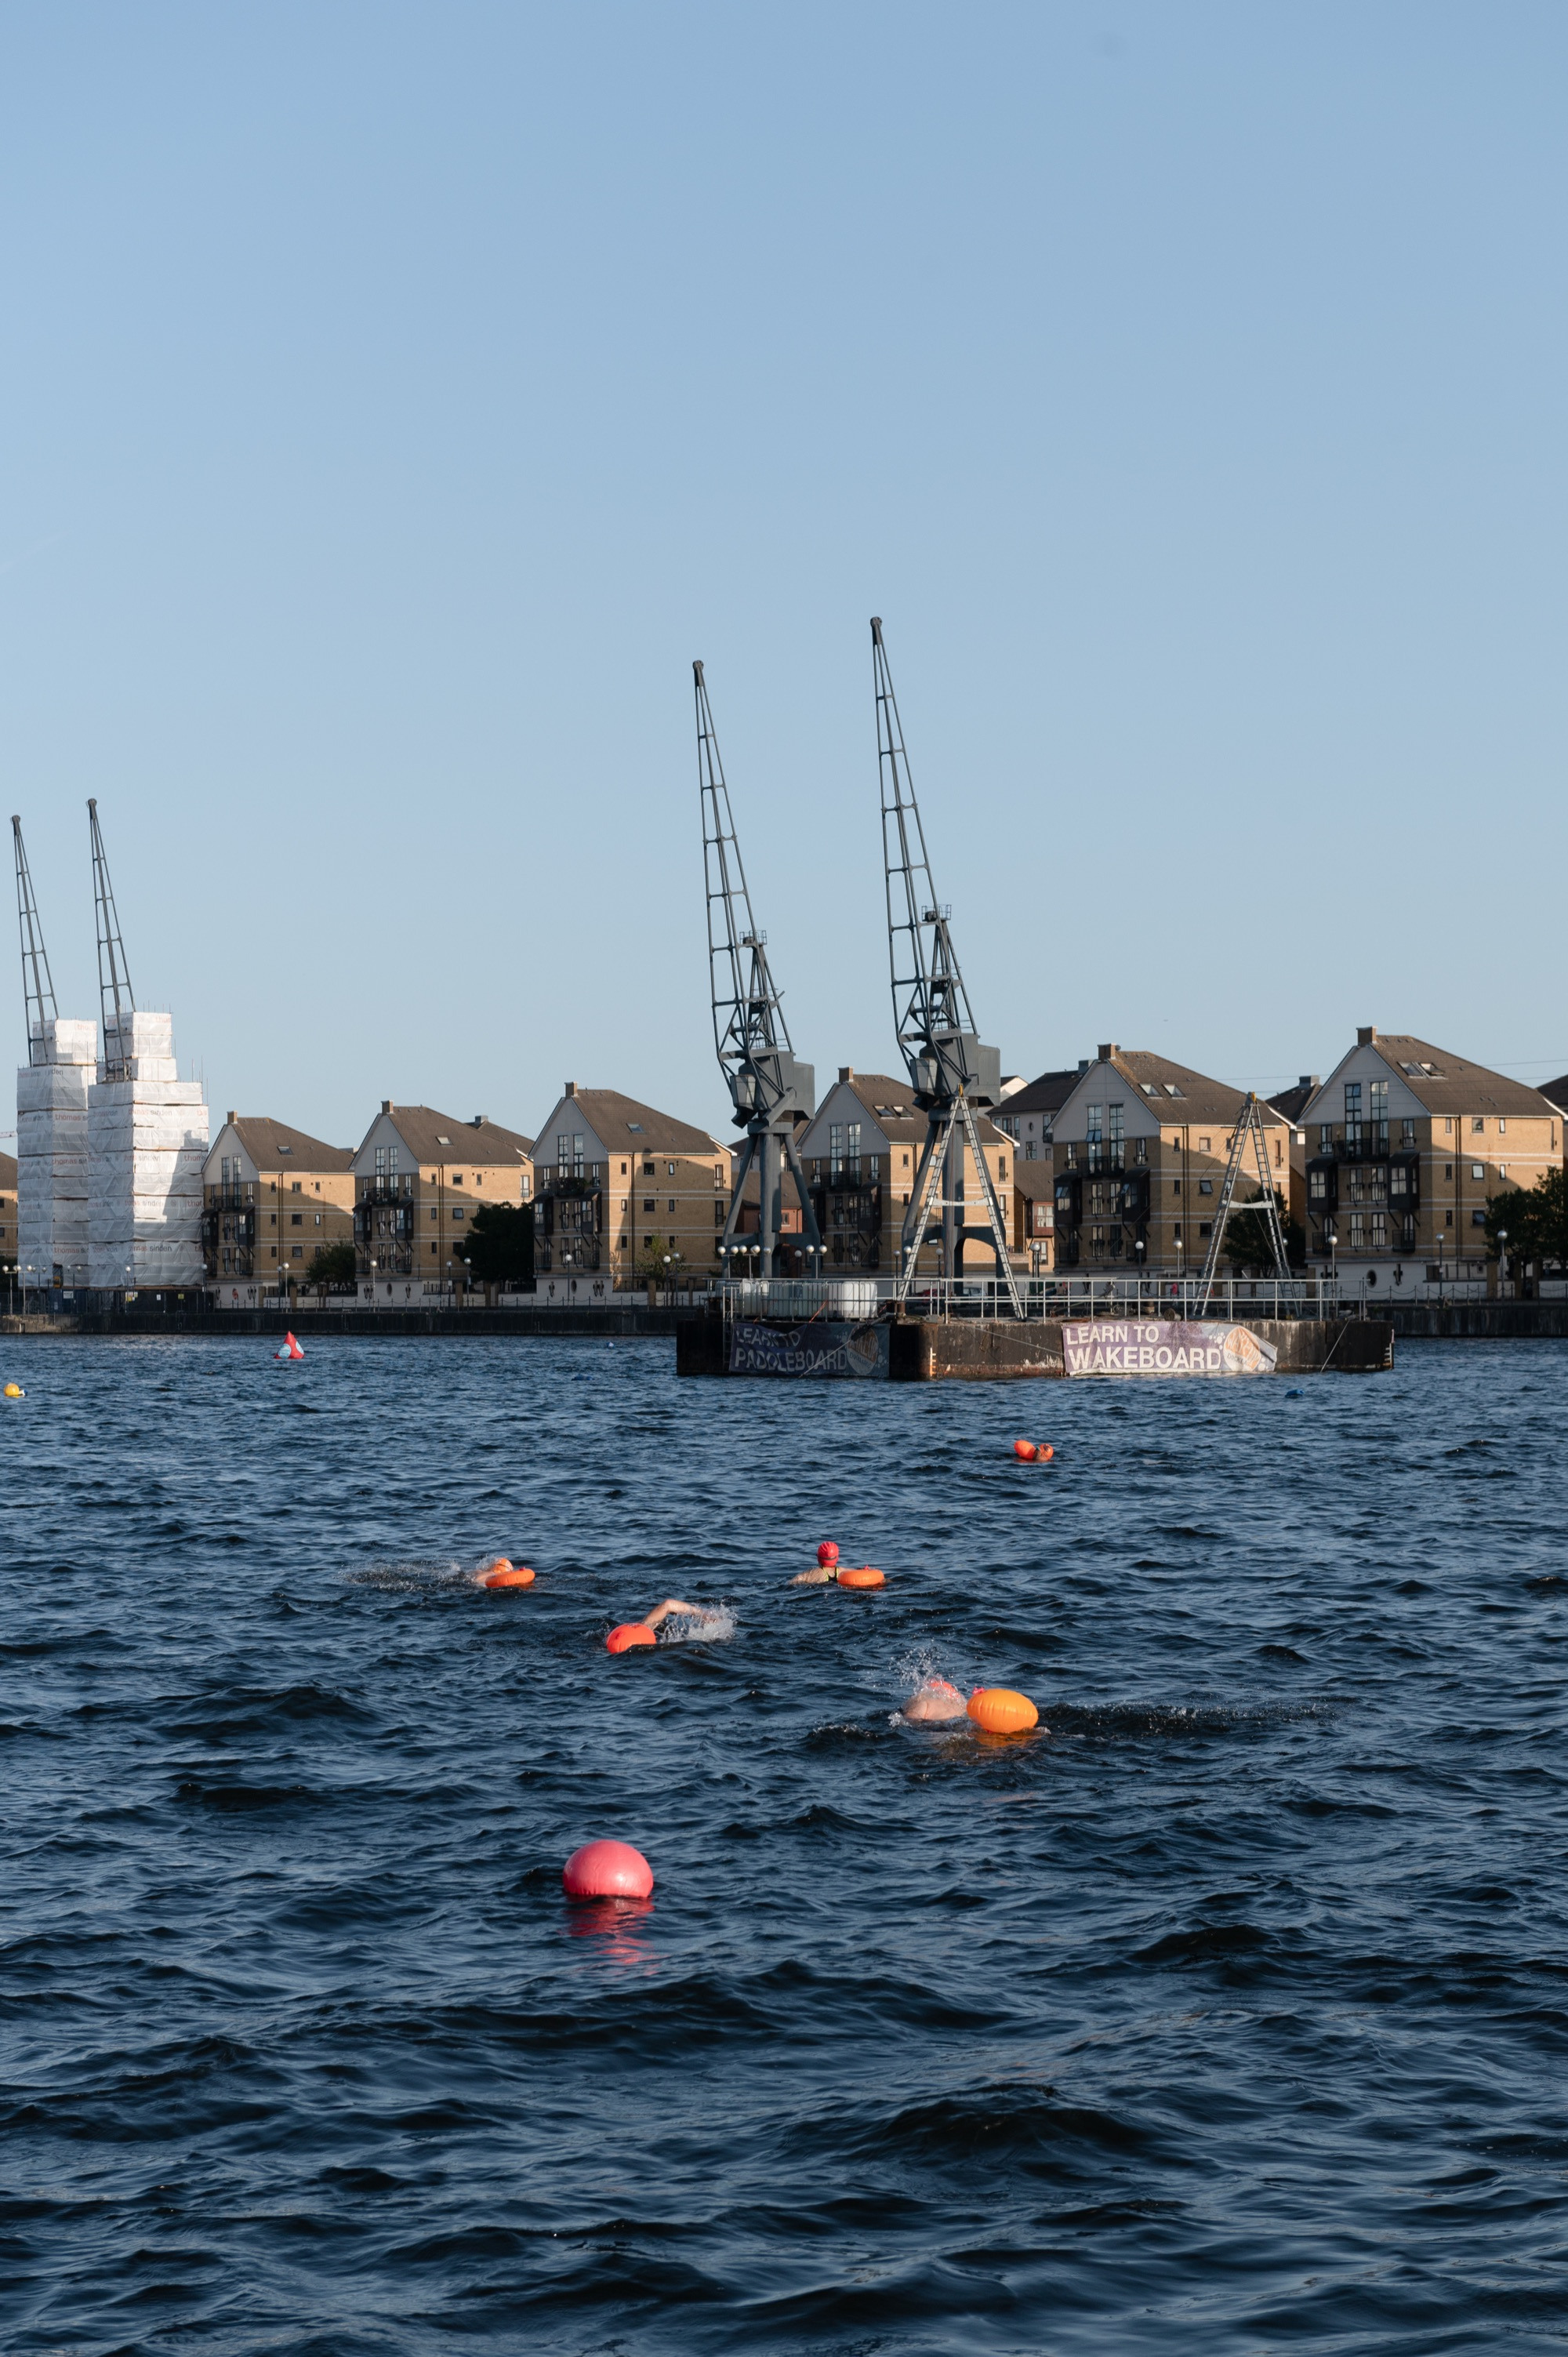 Royal Victoria Dock is a popular place to swim